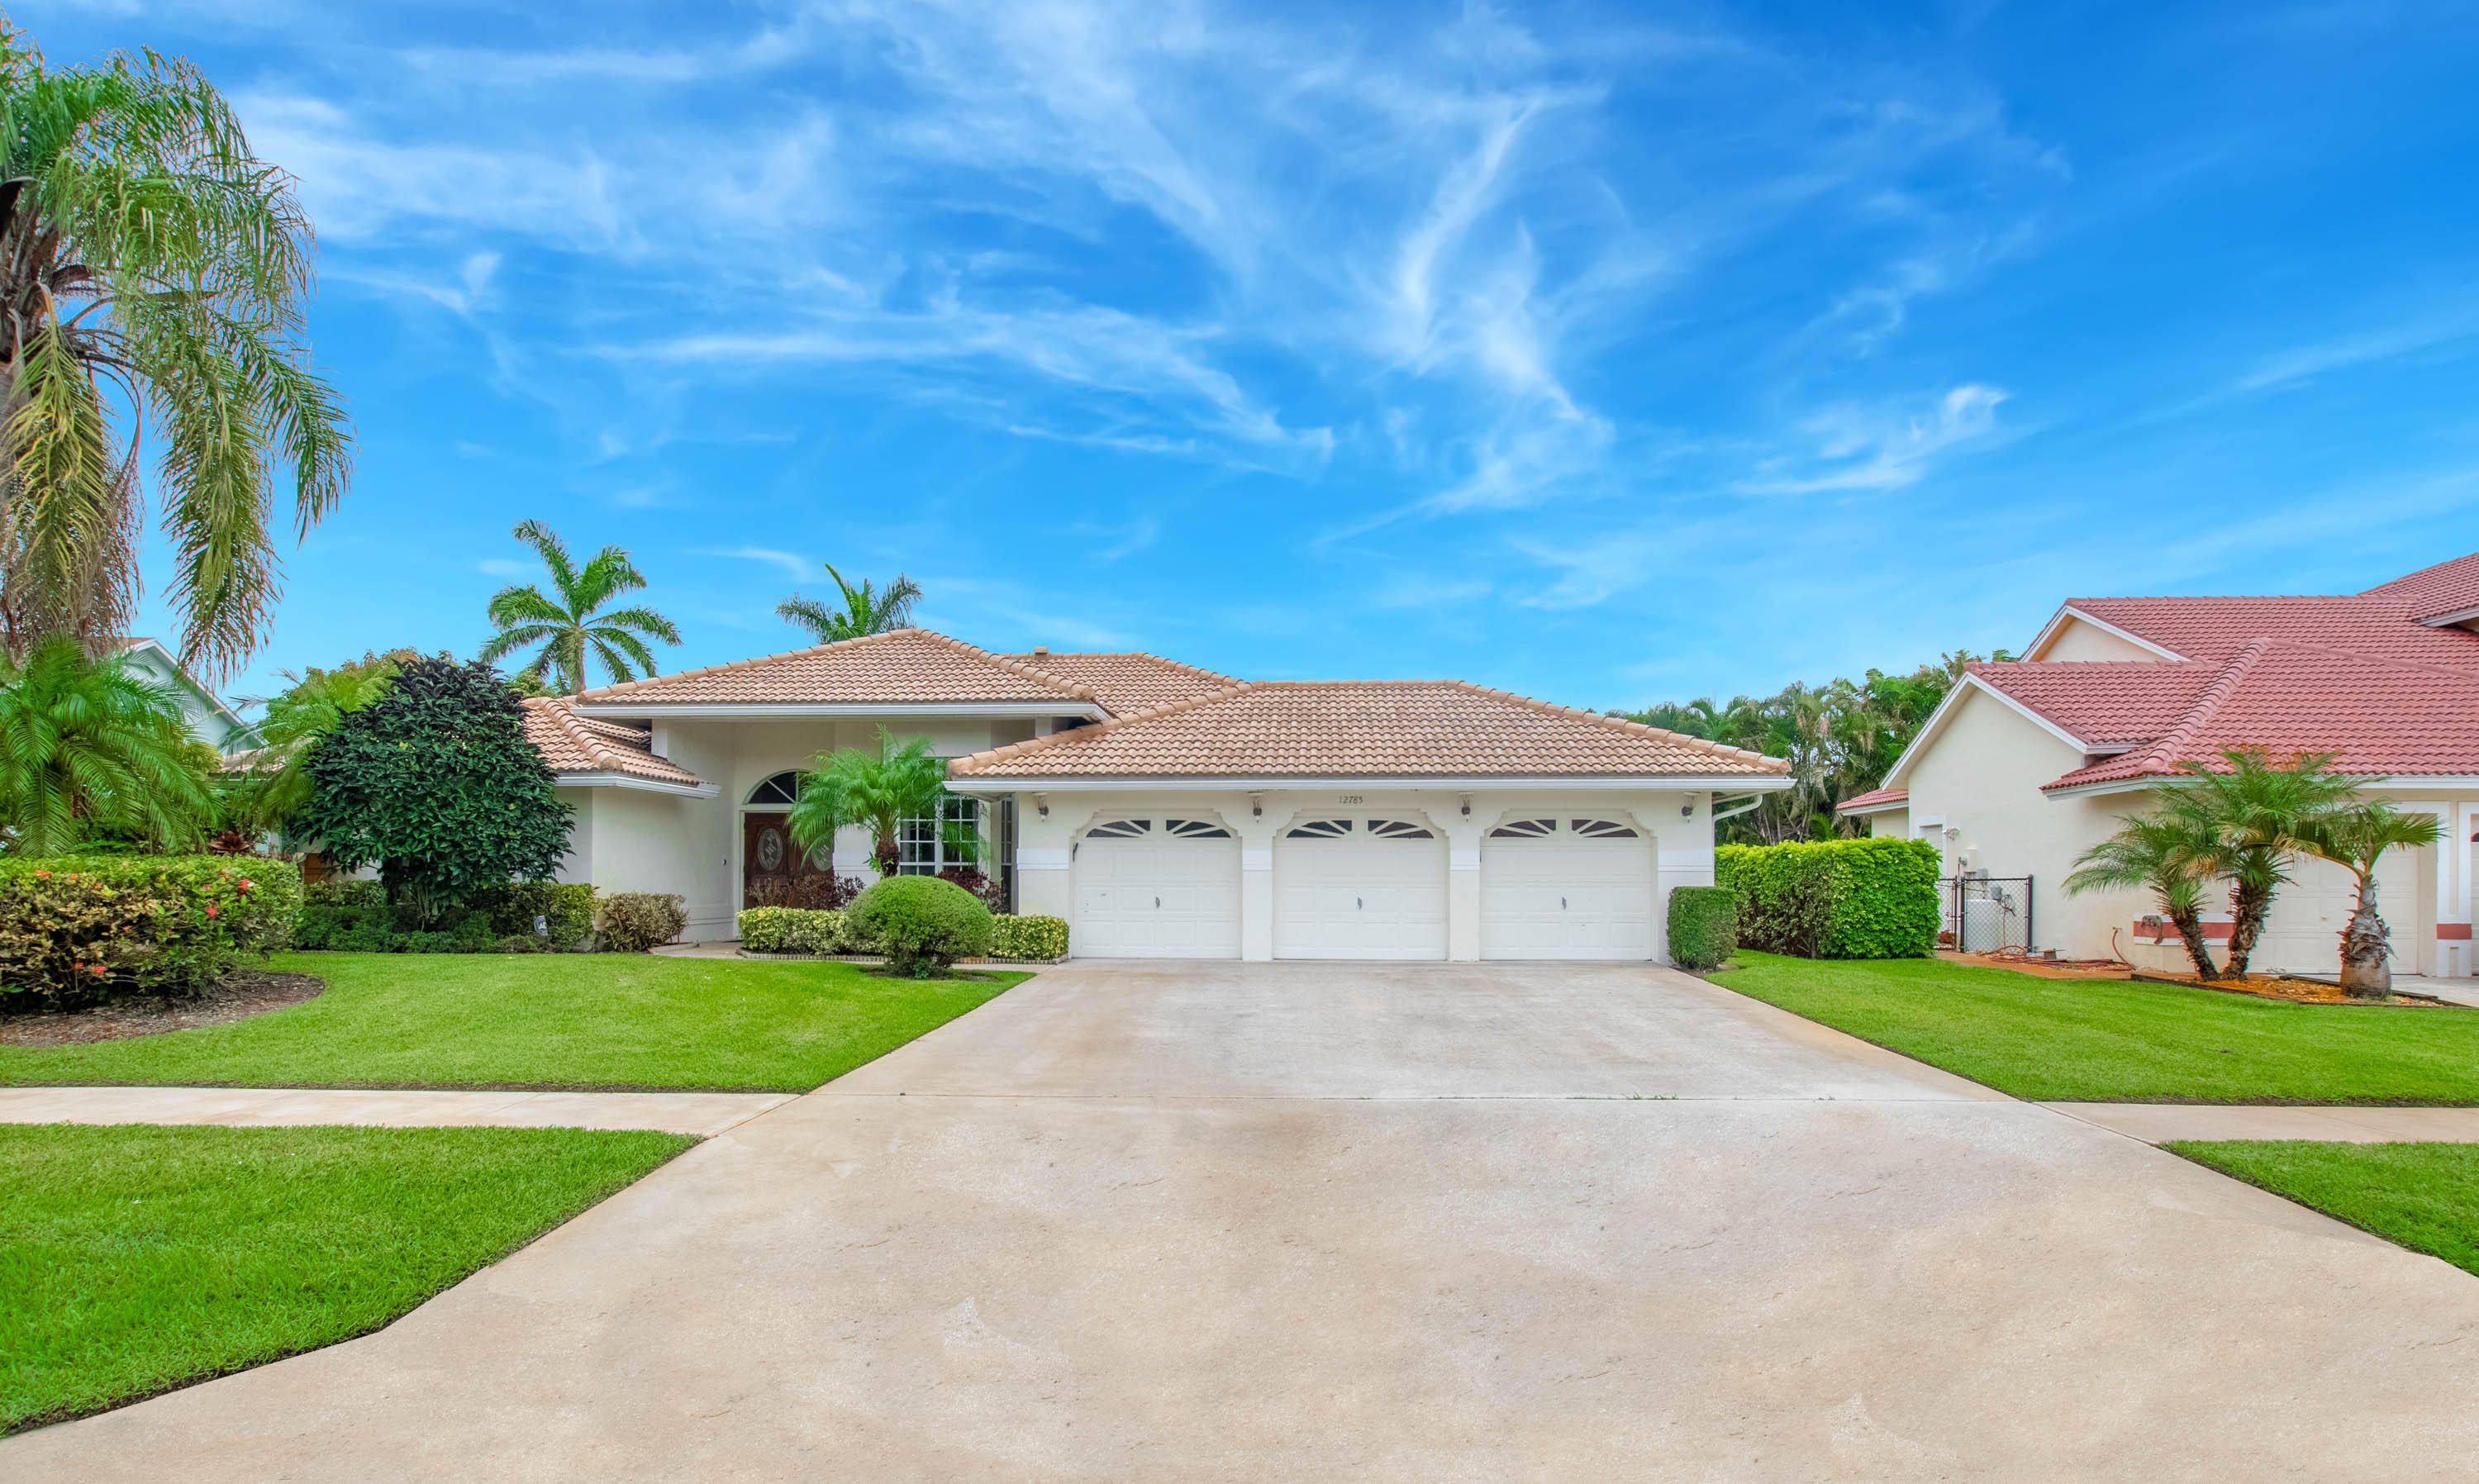 12785 Kingsway Road, Wellington, Florida 33414, 4 Bedrooms Bedrooms, ,2.1 BathroomsBathrooms,Single Family,For Sale,Margate Place,Kingsway,RX-10435229